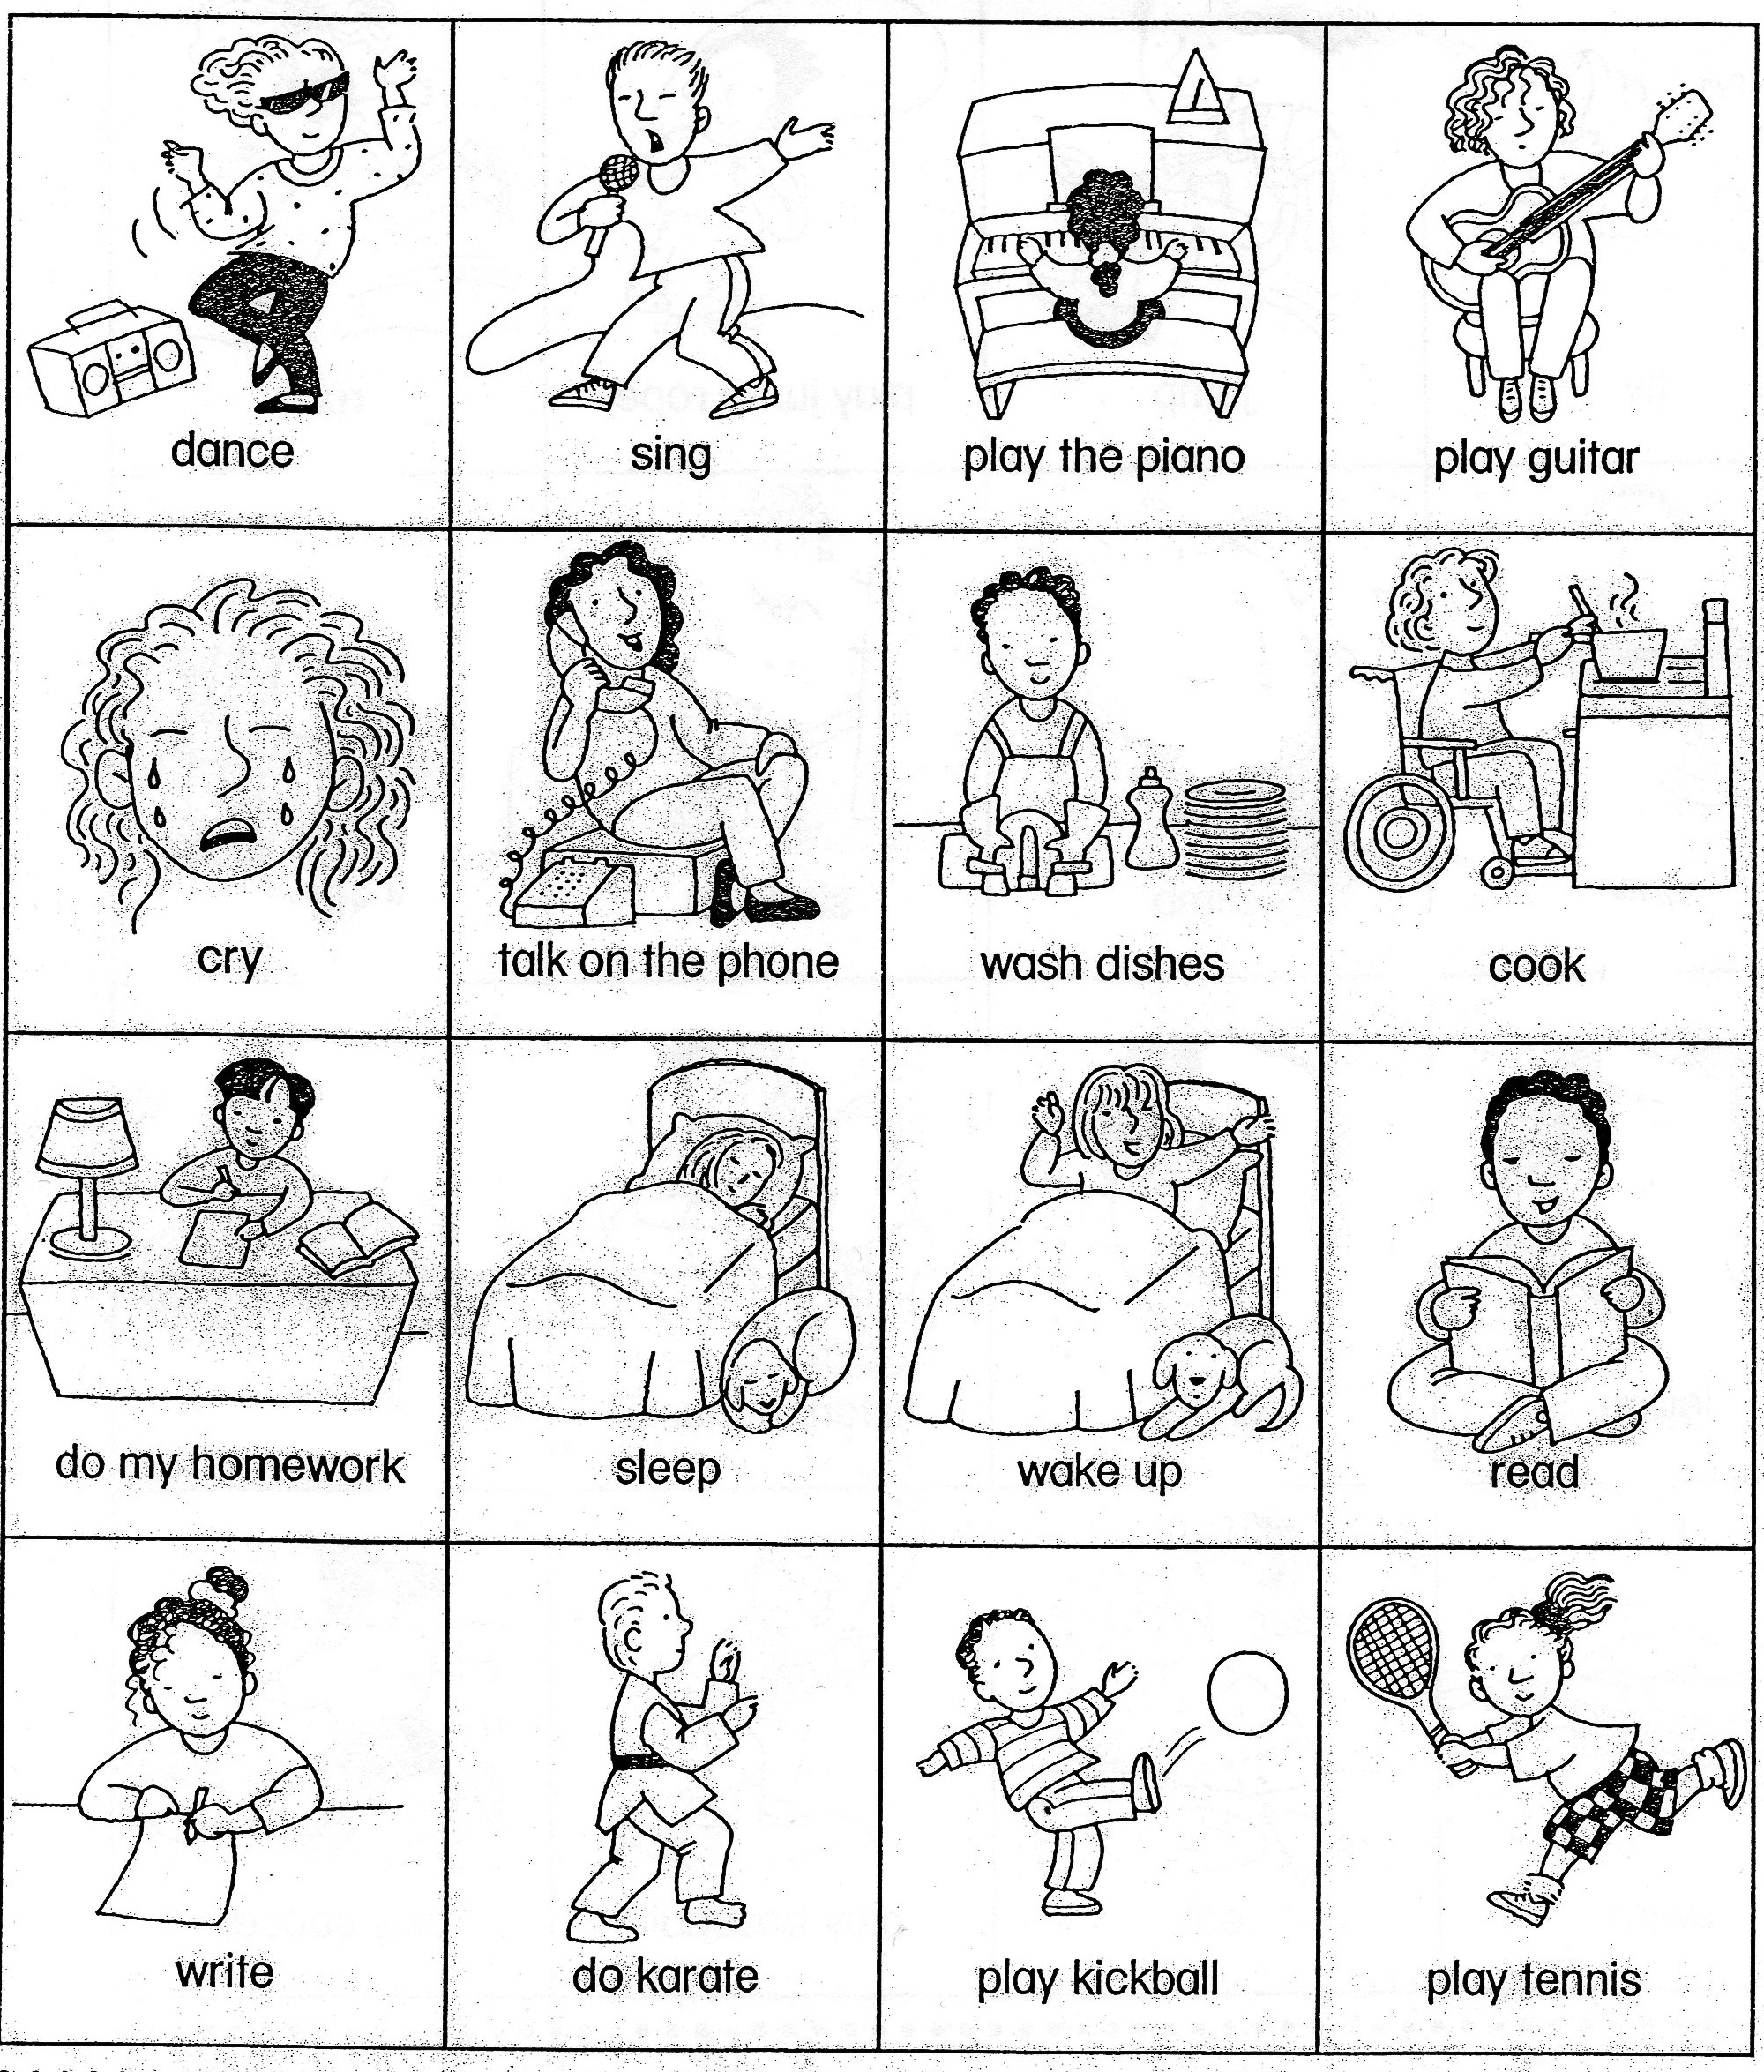 Worksheets For Teaching Verbs Helping Verbs Word Lists Activities – Action Words Worksheets for Kindergarten